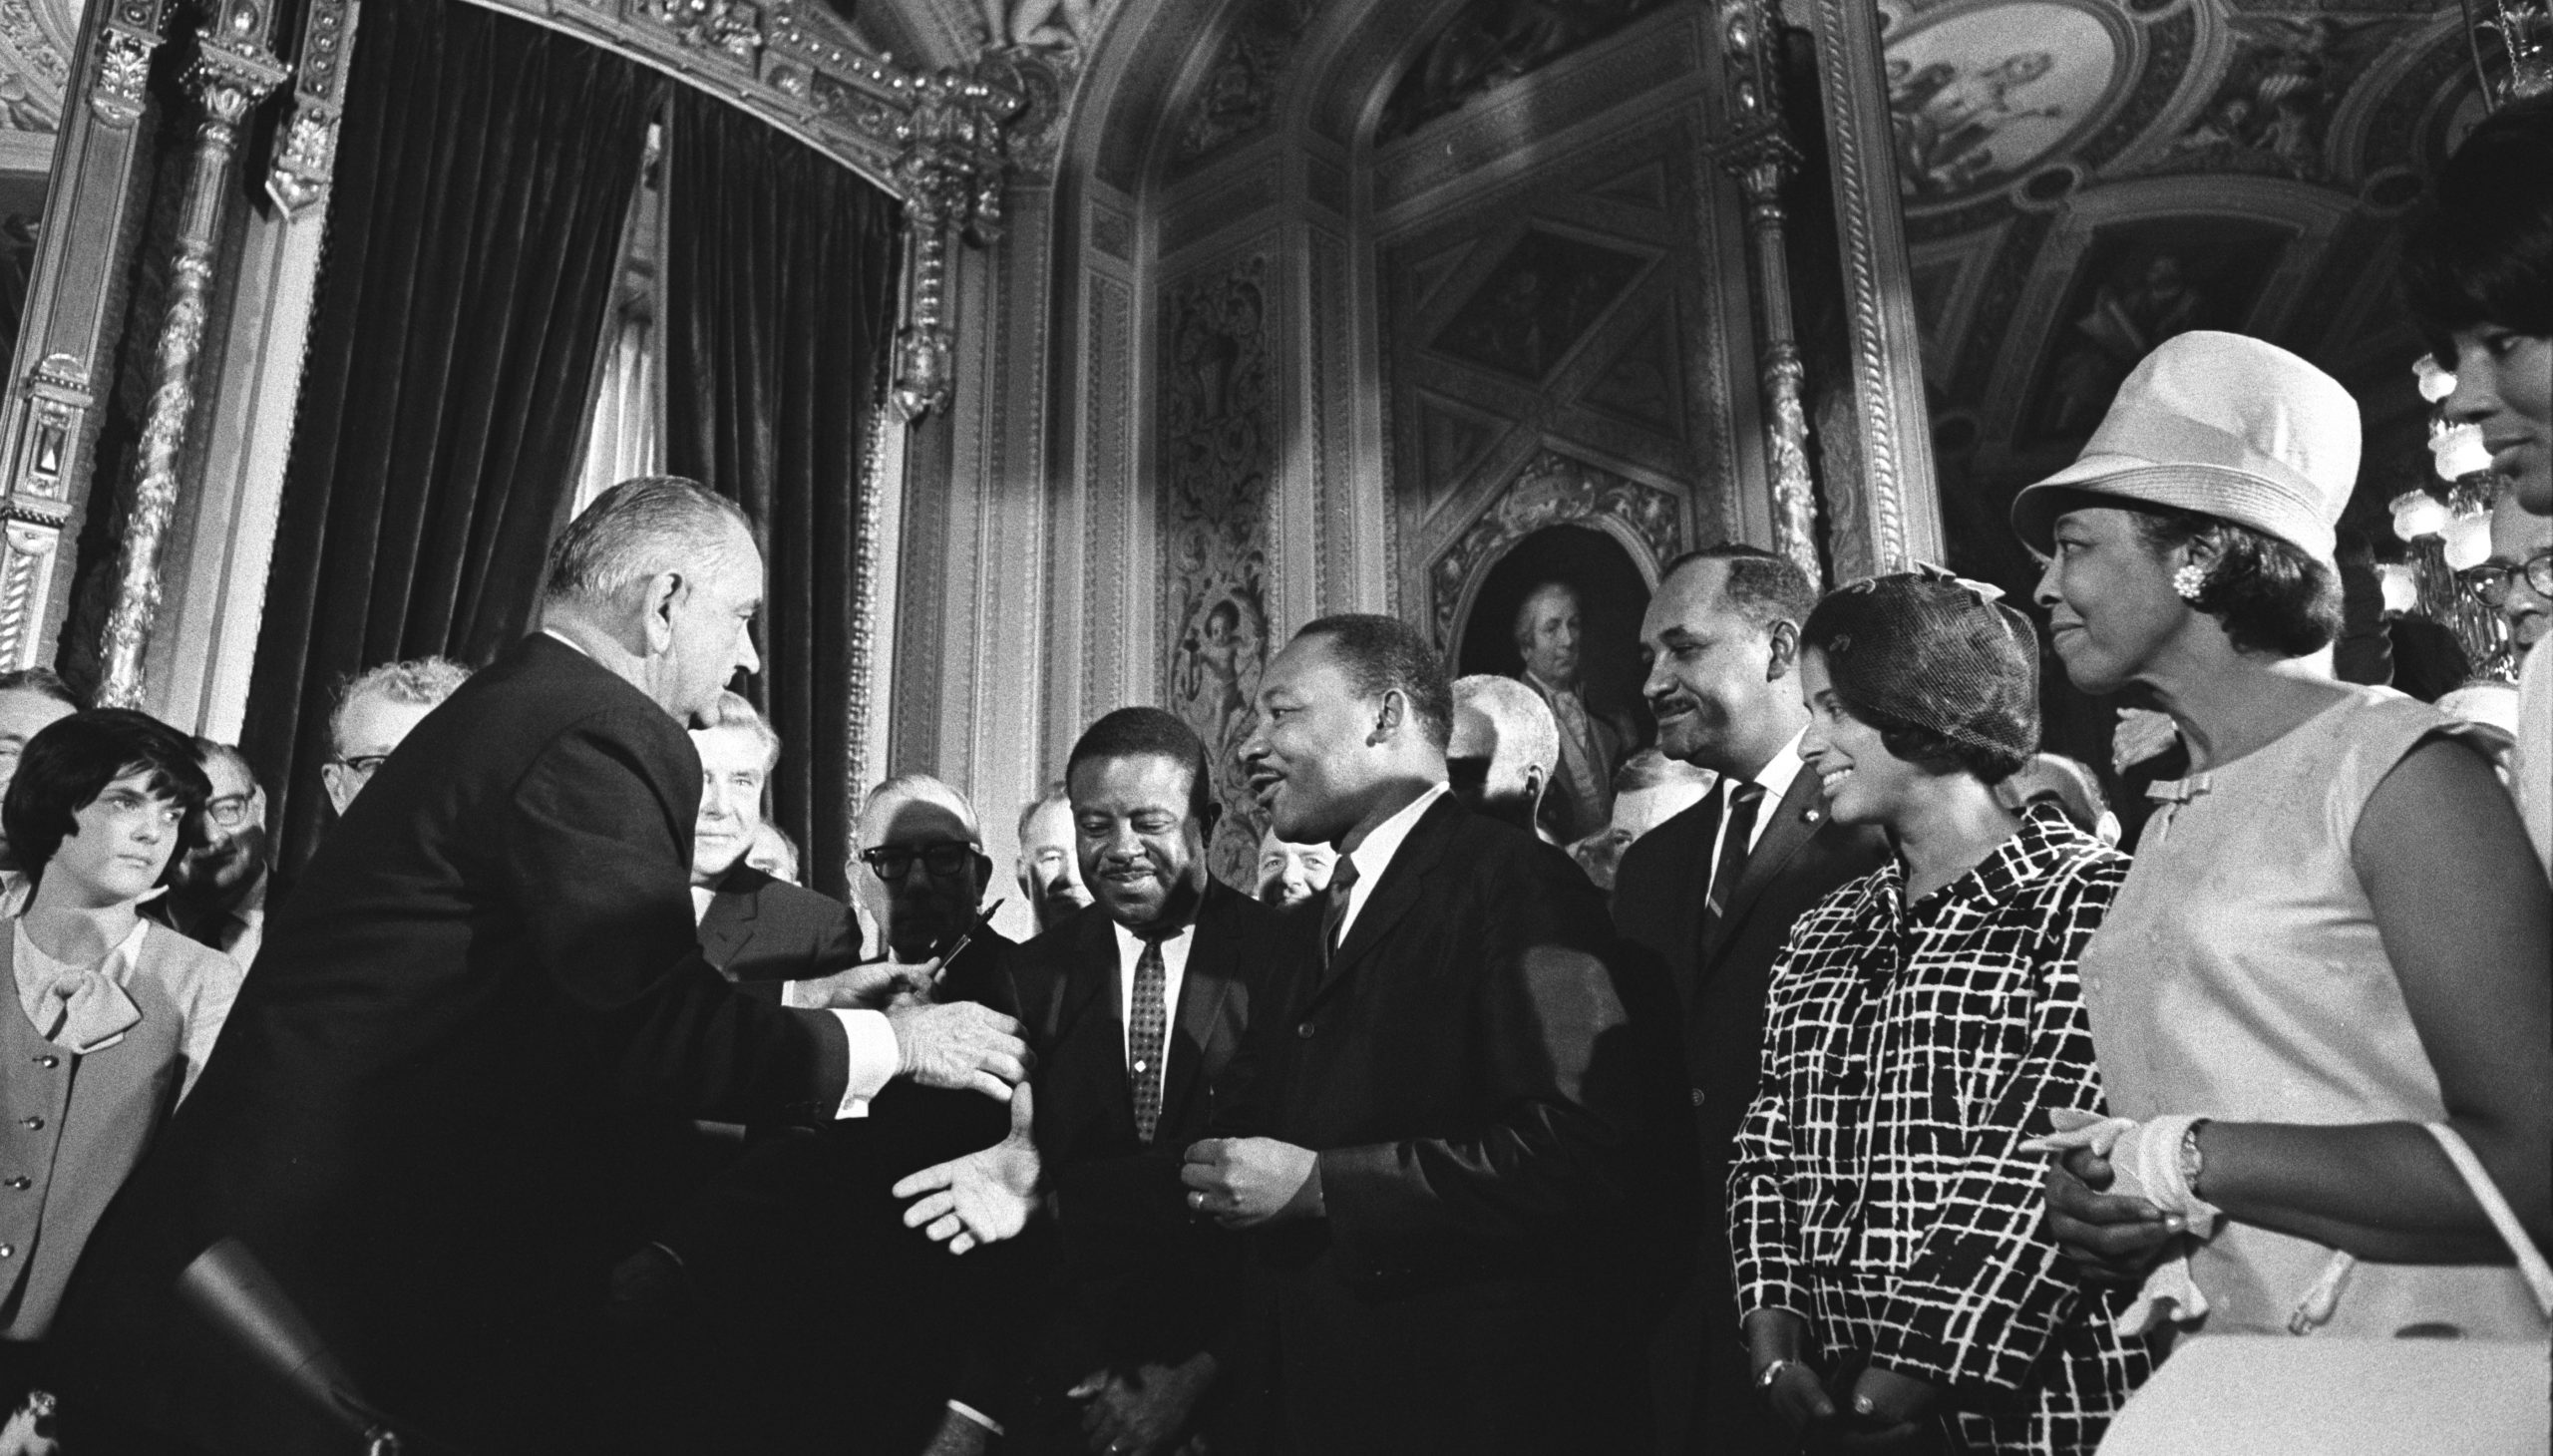 Lyndon Johnson, Martin Luther King Jr. and Rosa Parks among crowd of people